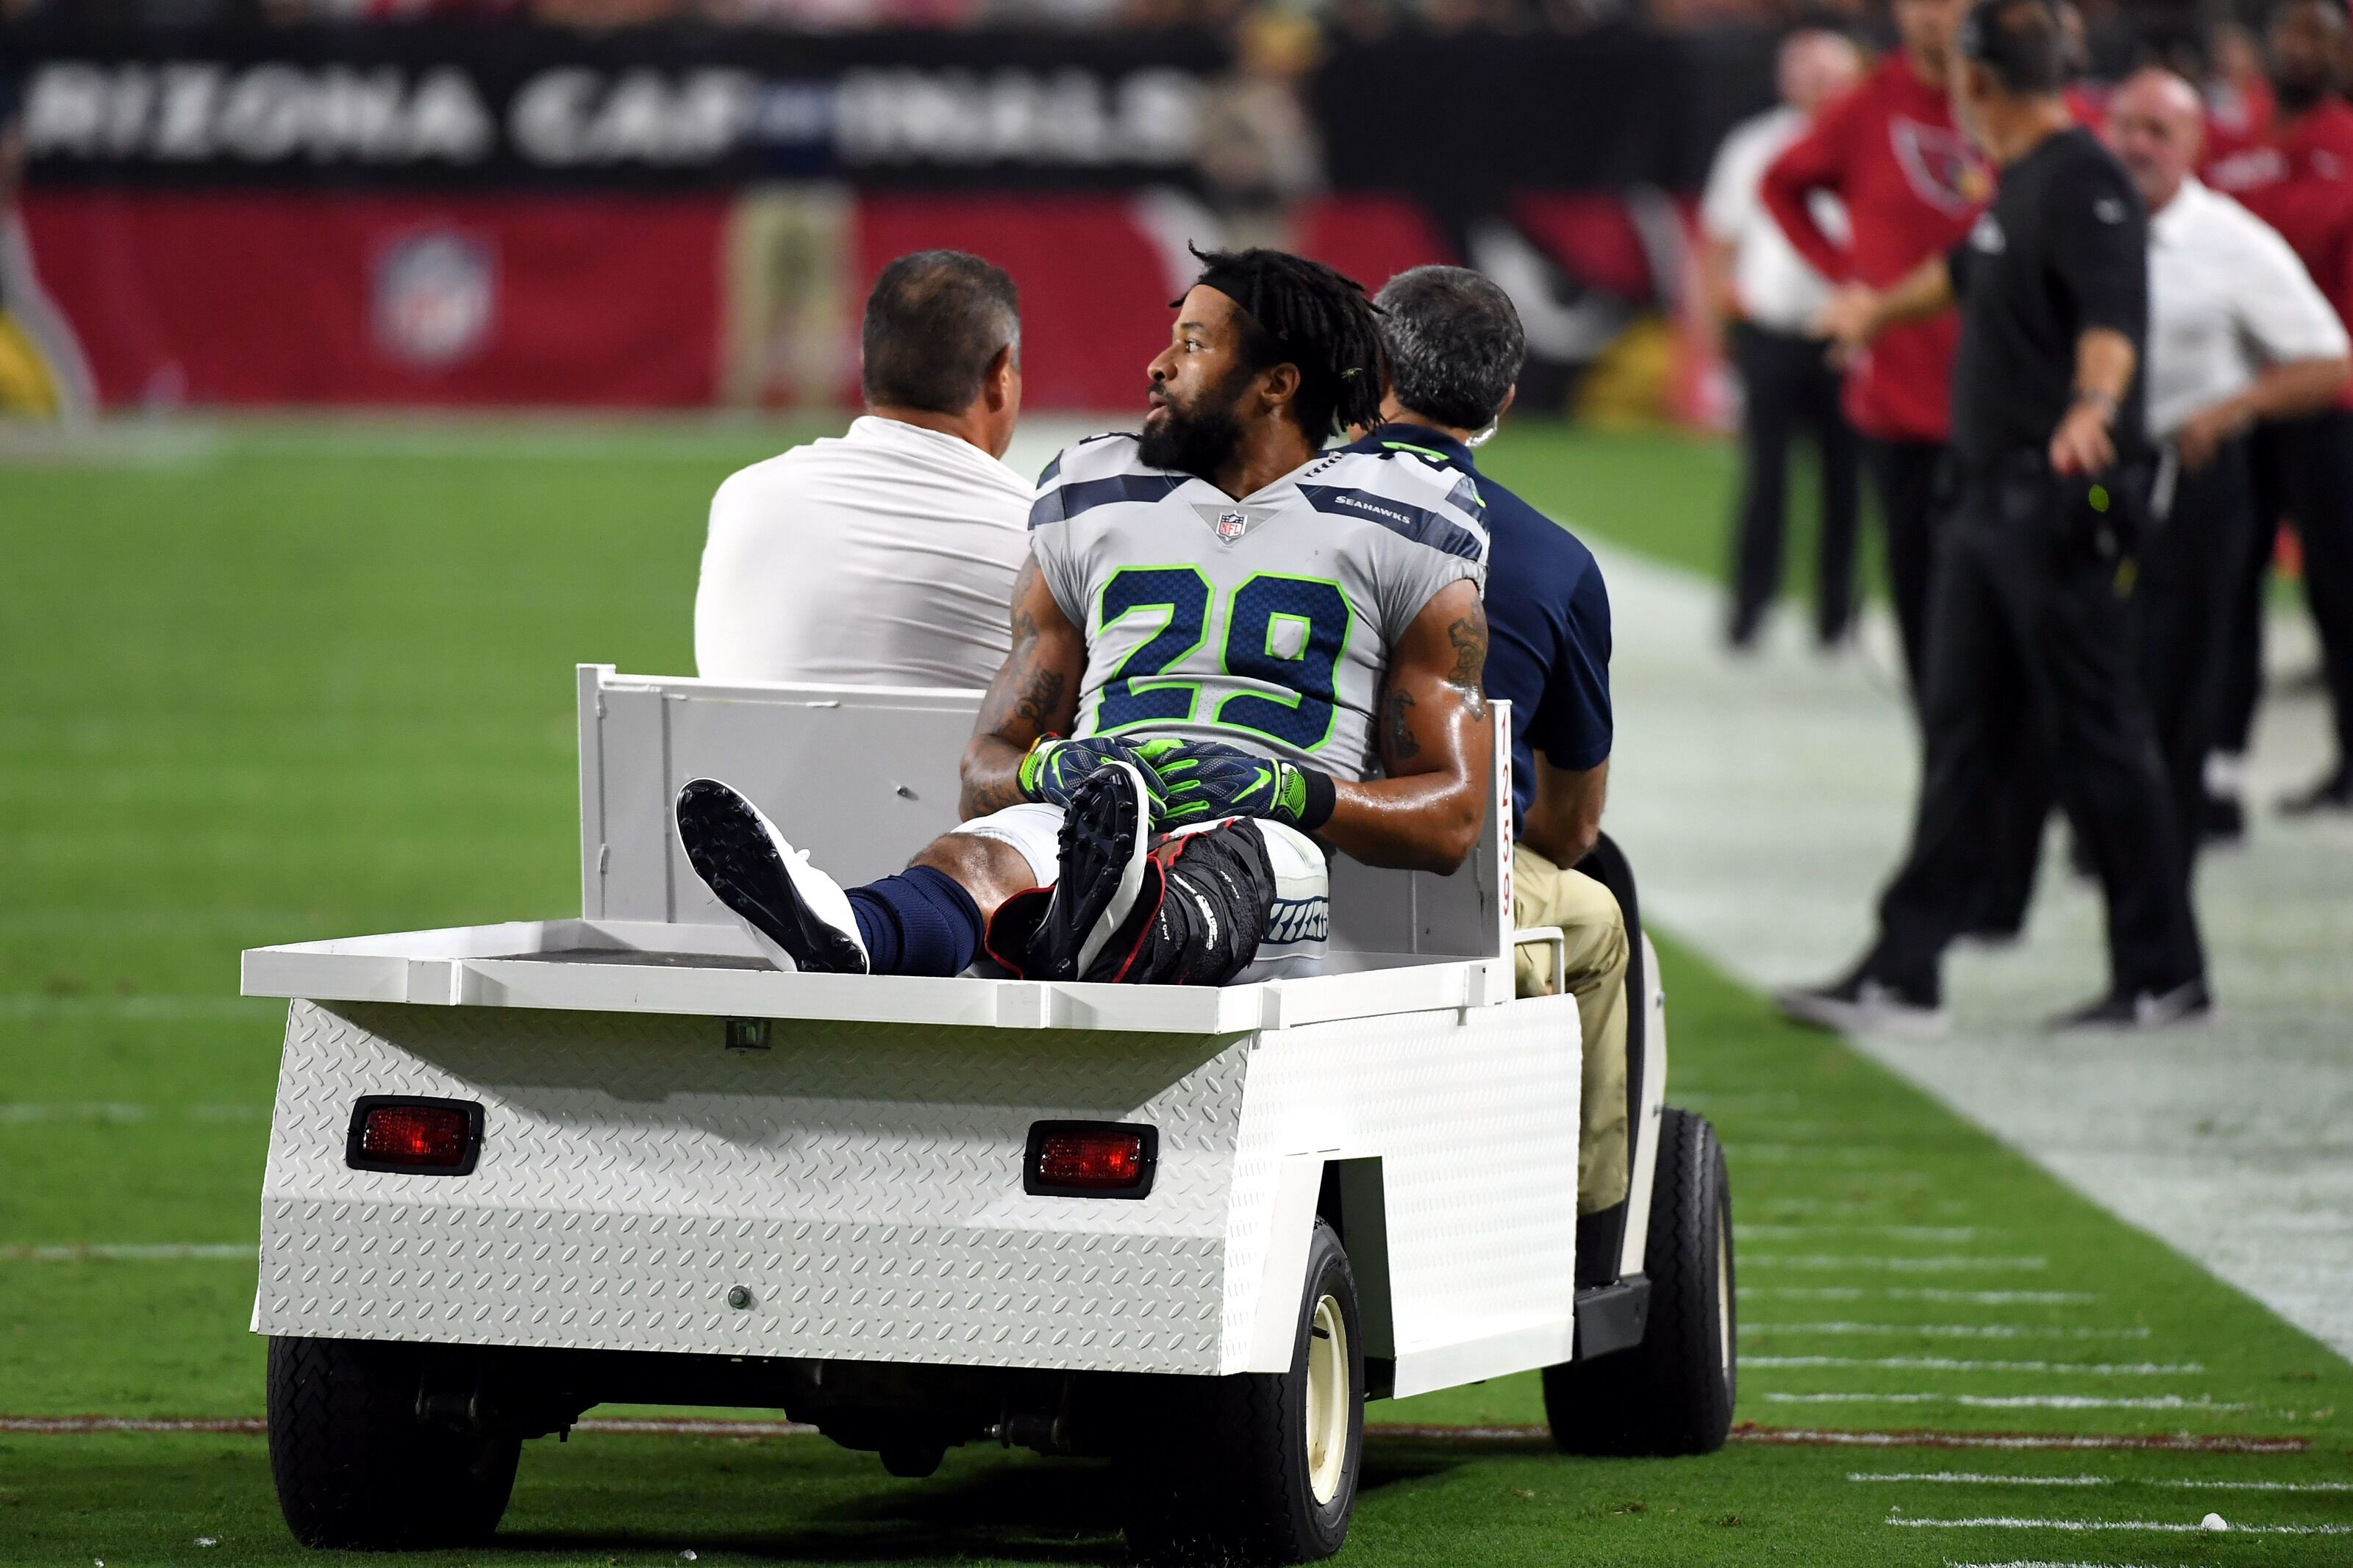 Seahawks safety Earl Thomas takes action but who cares?